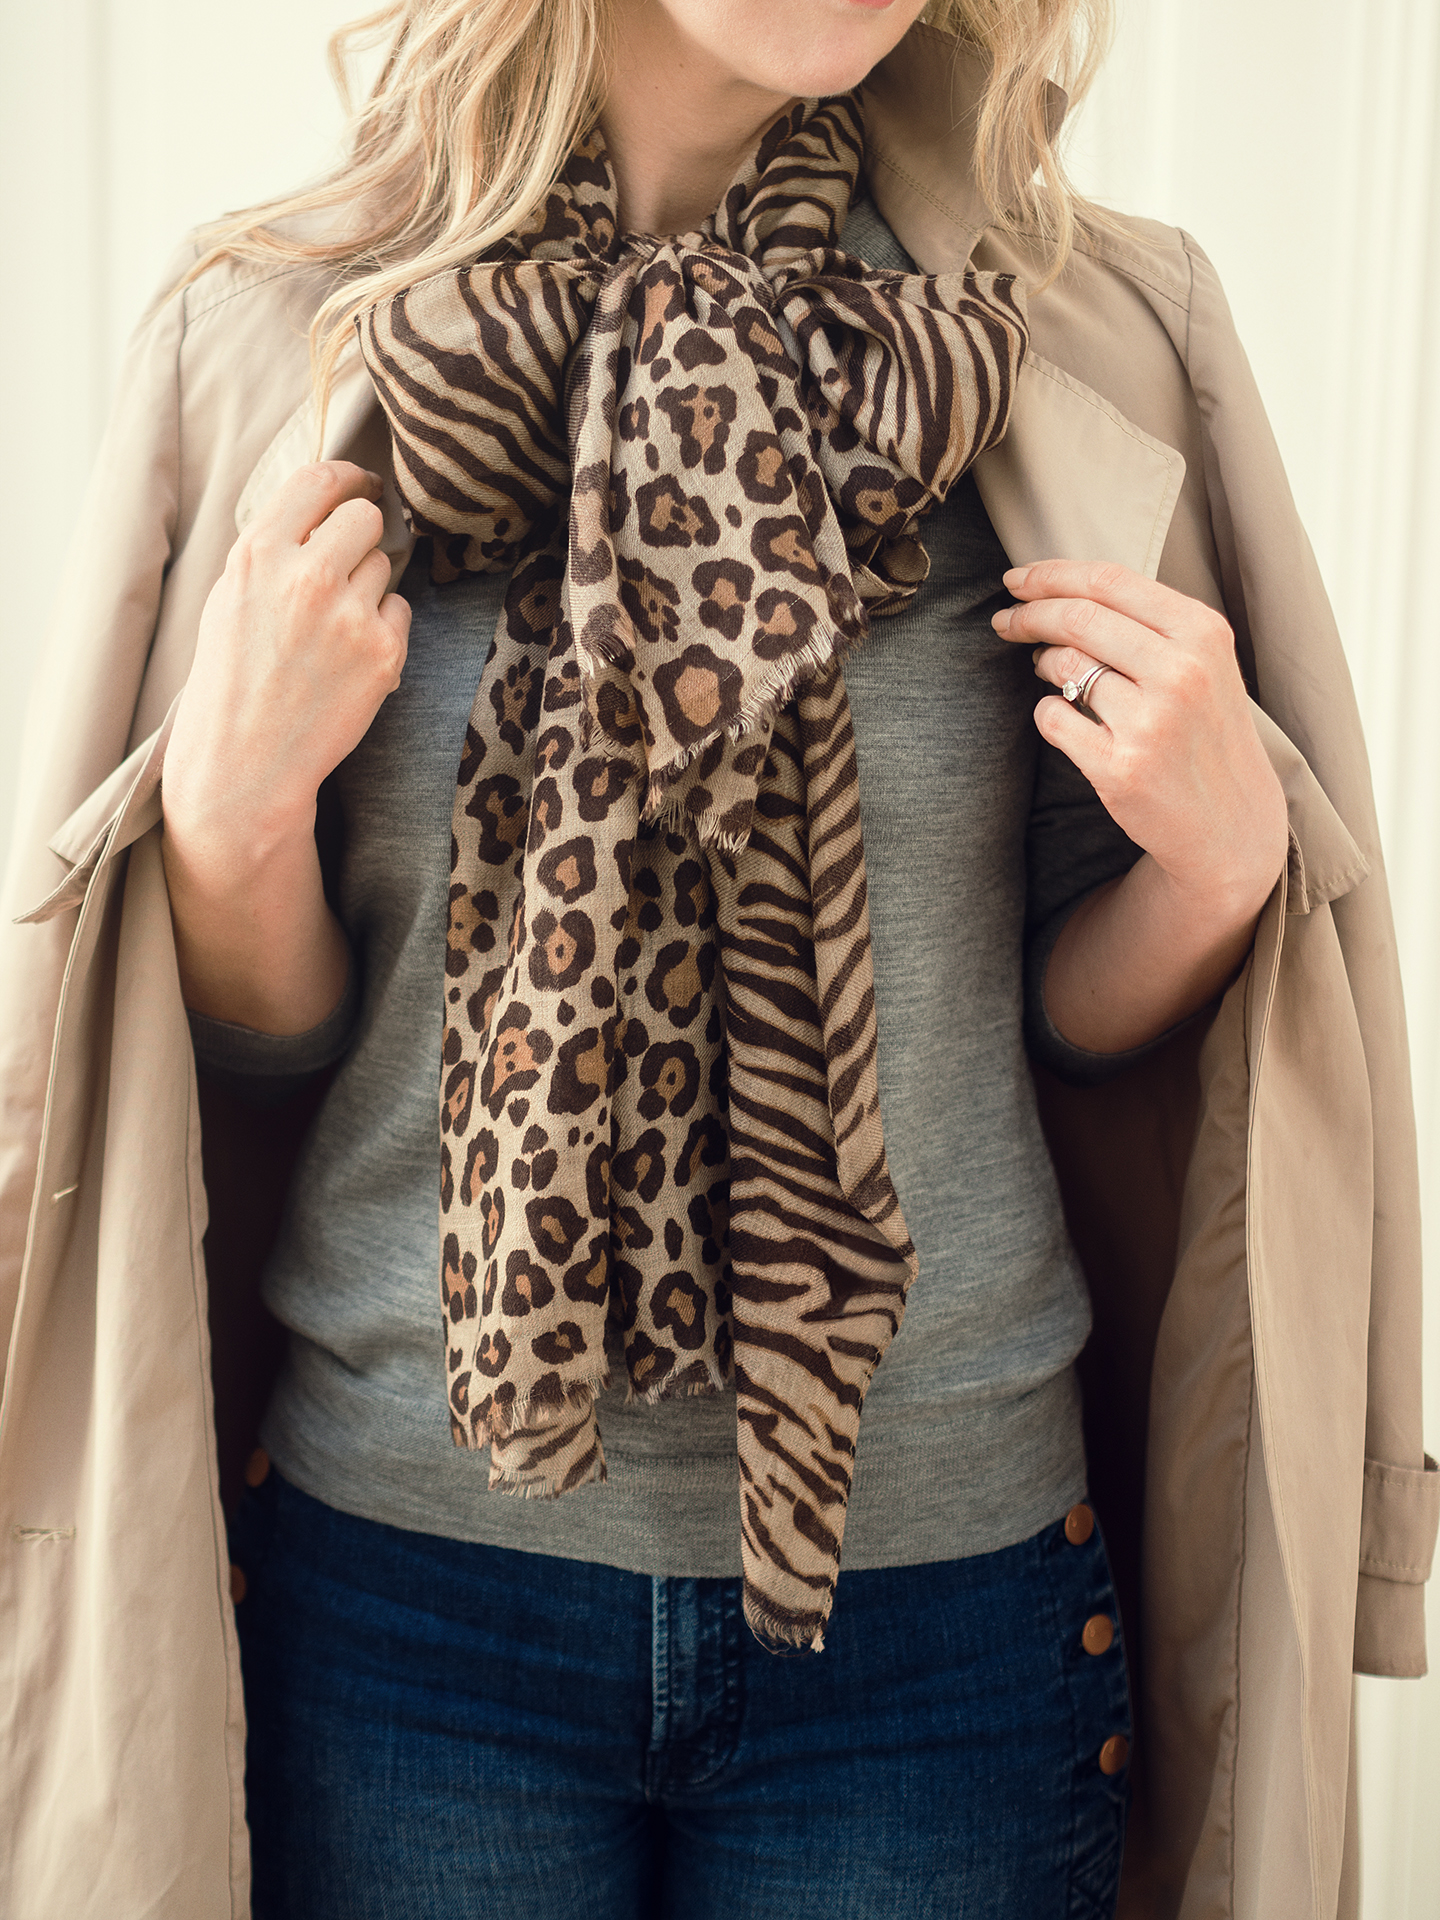 Lois Avery luxury cashmere leopard print scarf